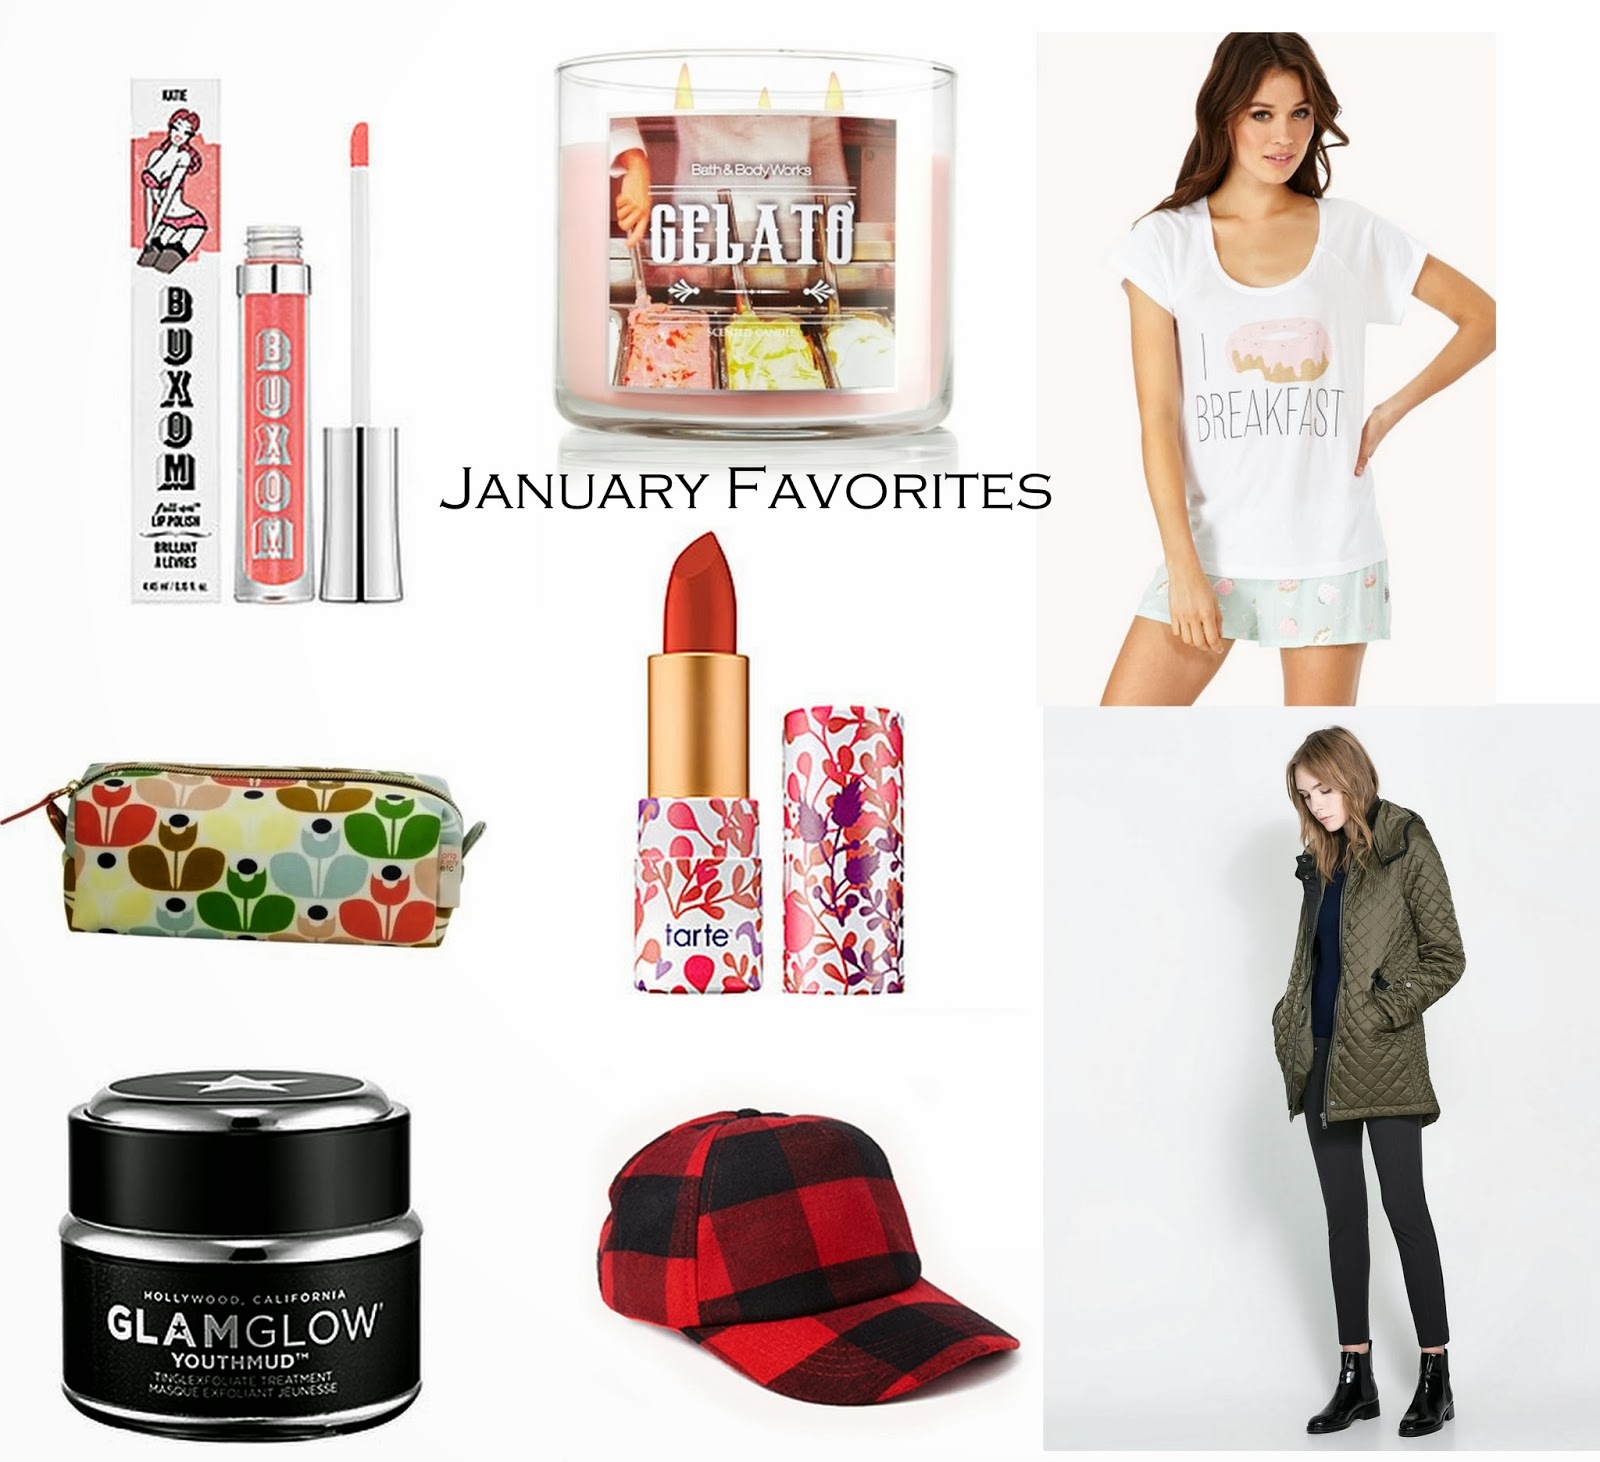 january favorites, blogger, makeup, fashion, syle, glam glow, buffalo plad, donut, zara, forever21, buxum, lipgloss, gelato candle, bath and body works, sephora, tarte, amazonian lipstick, orla kiely, target